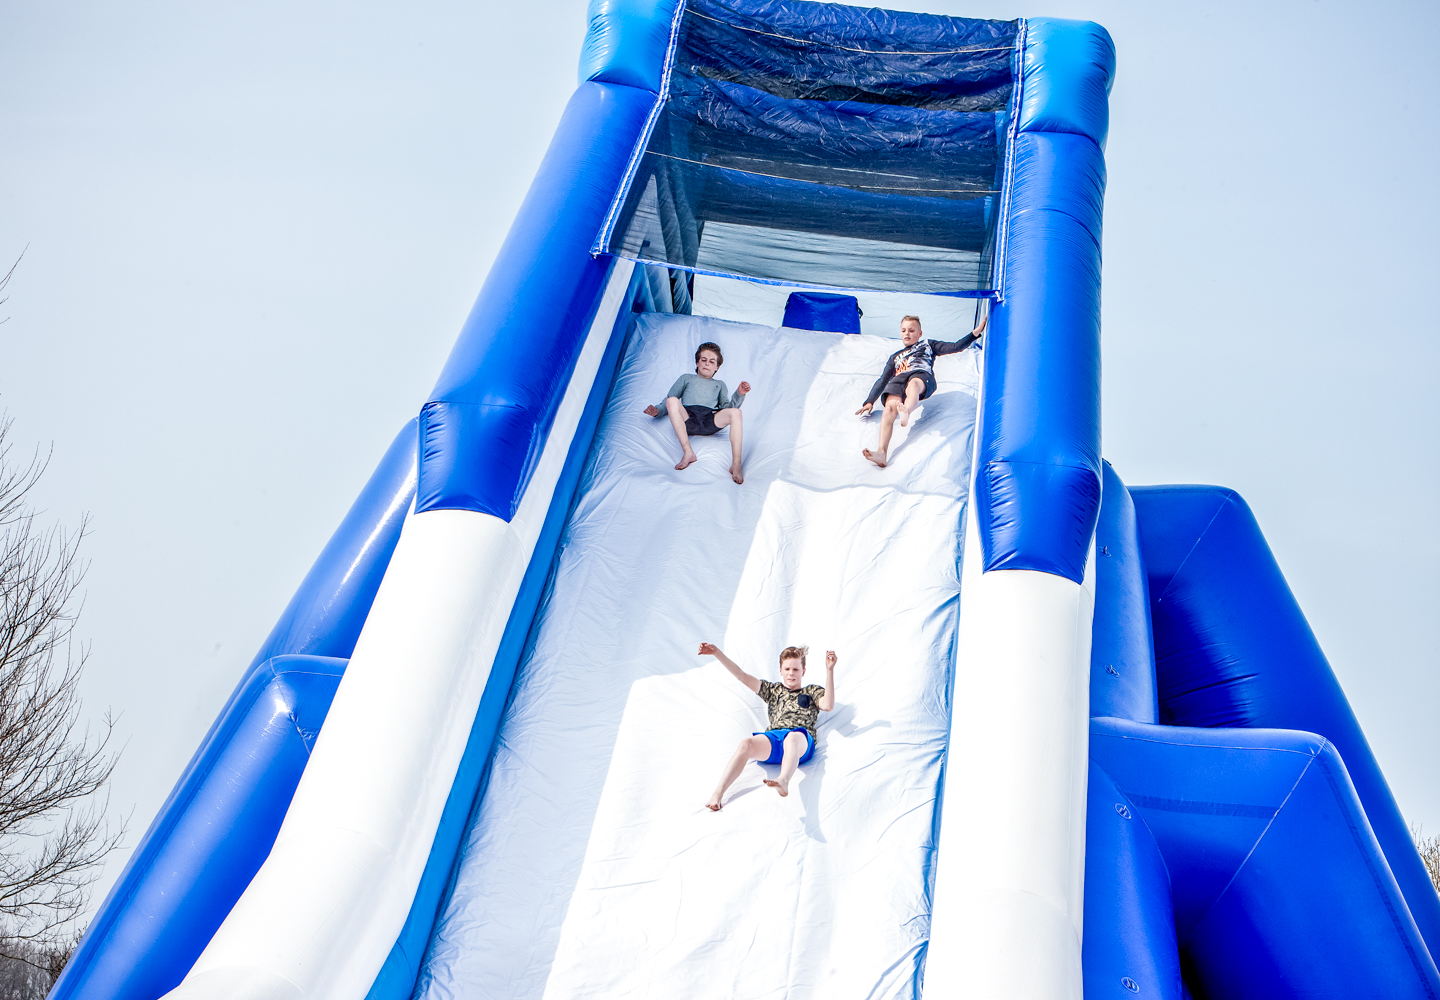 Mega Winter Slide -